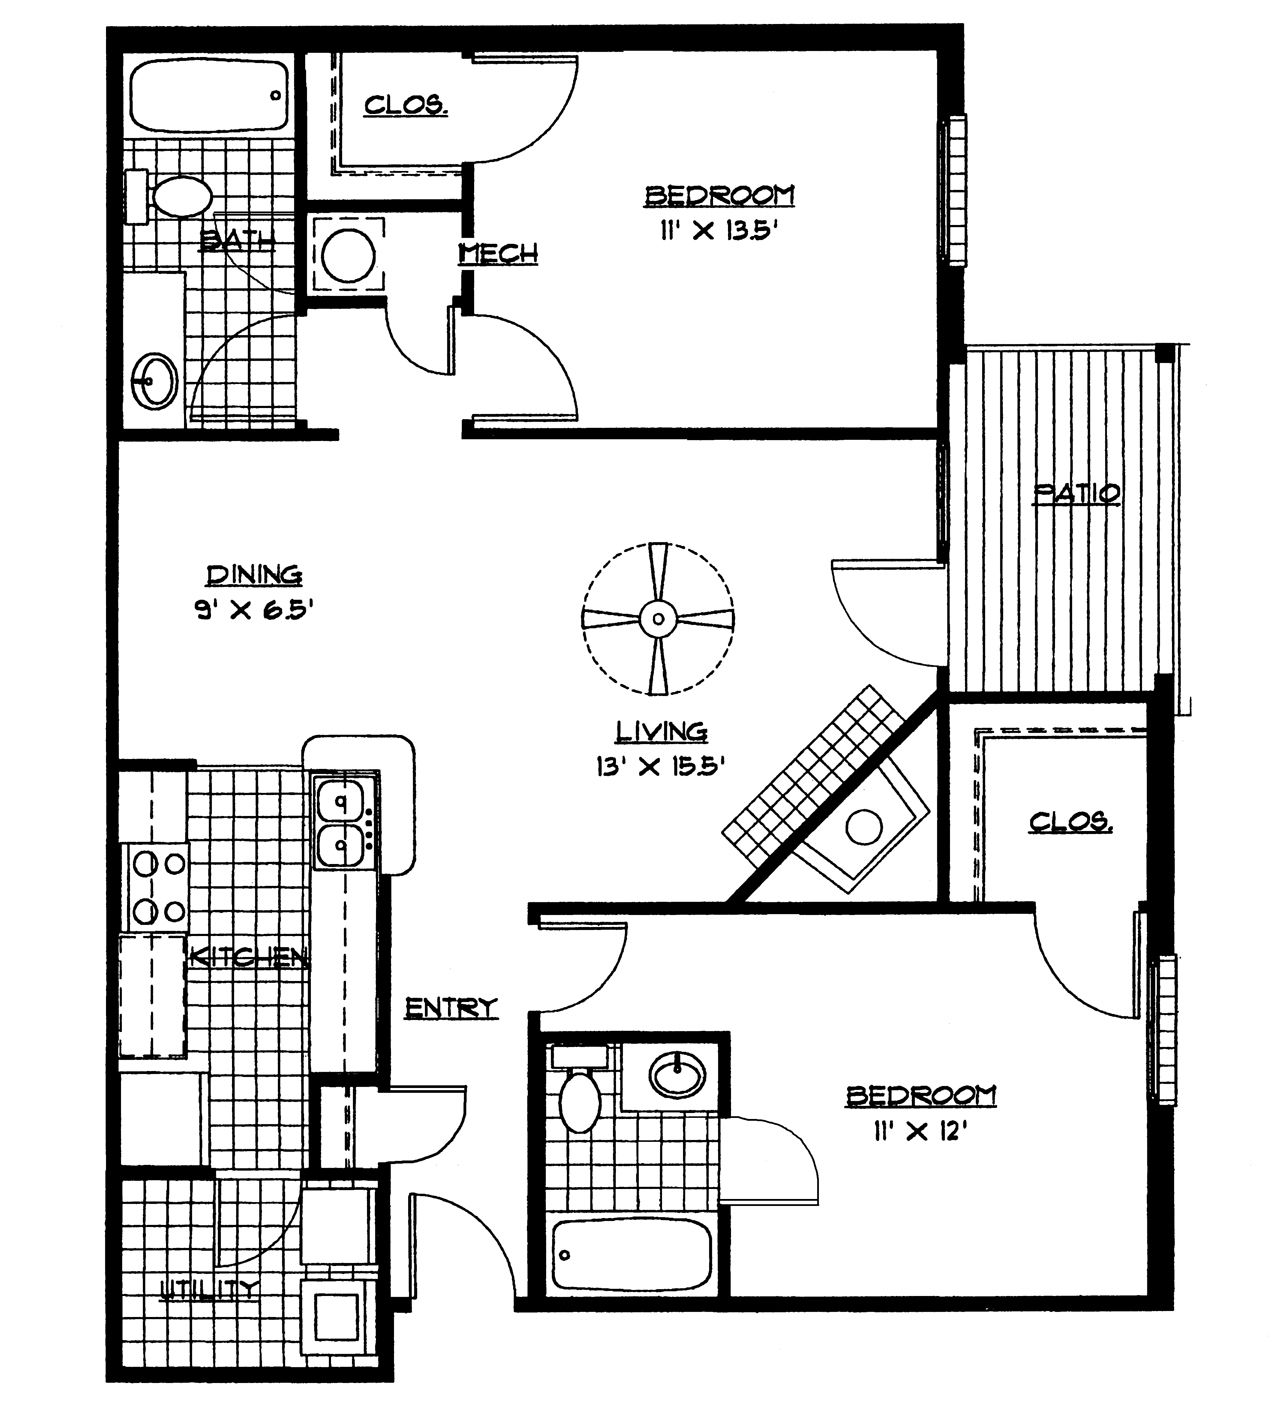 Small house floor plans 2 bedrooms bedroom floor plan Build 2 bedroom house